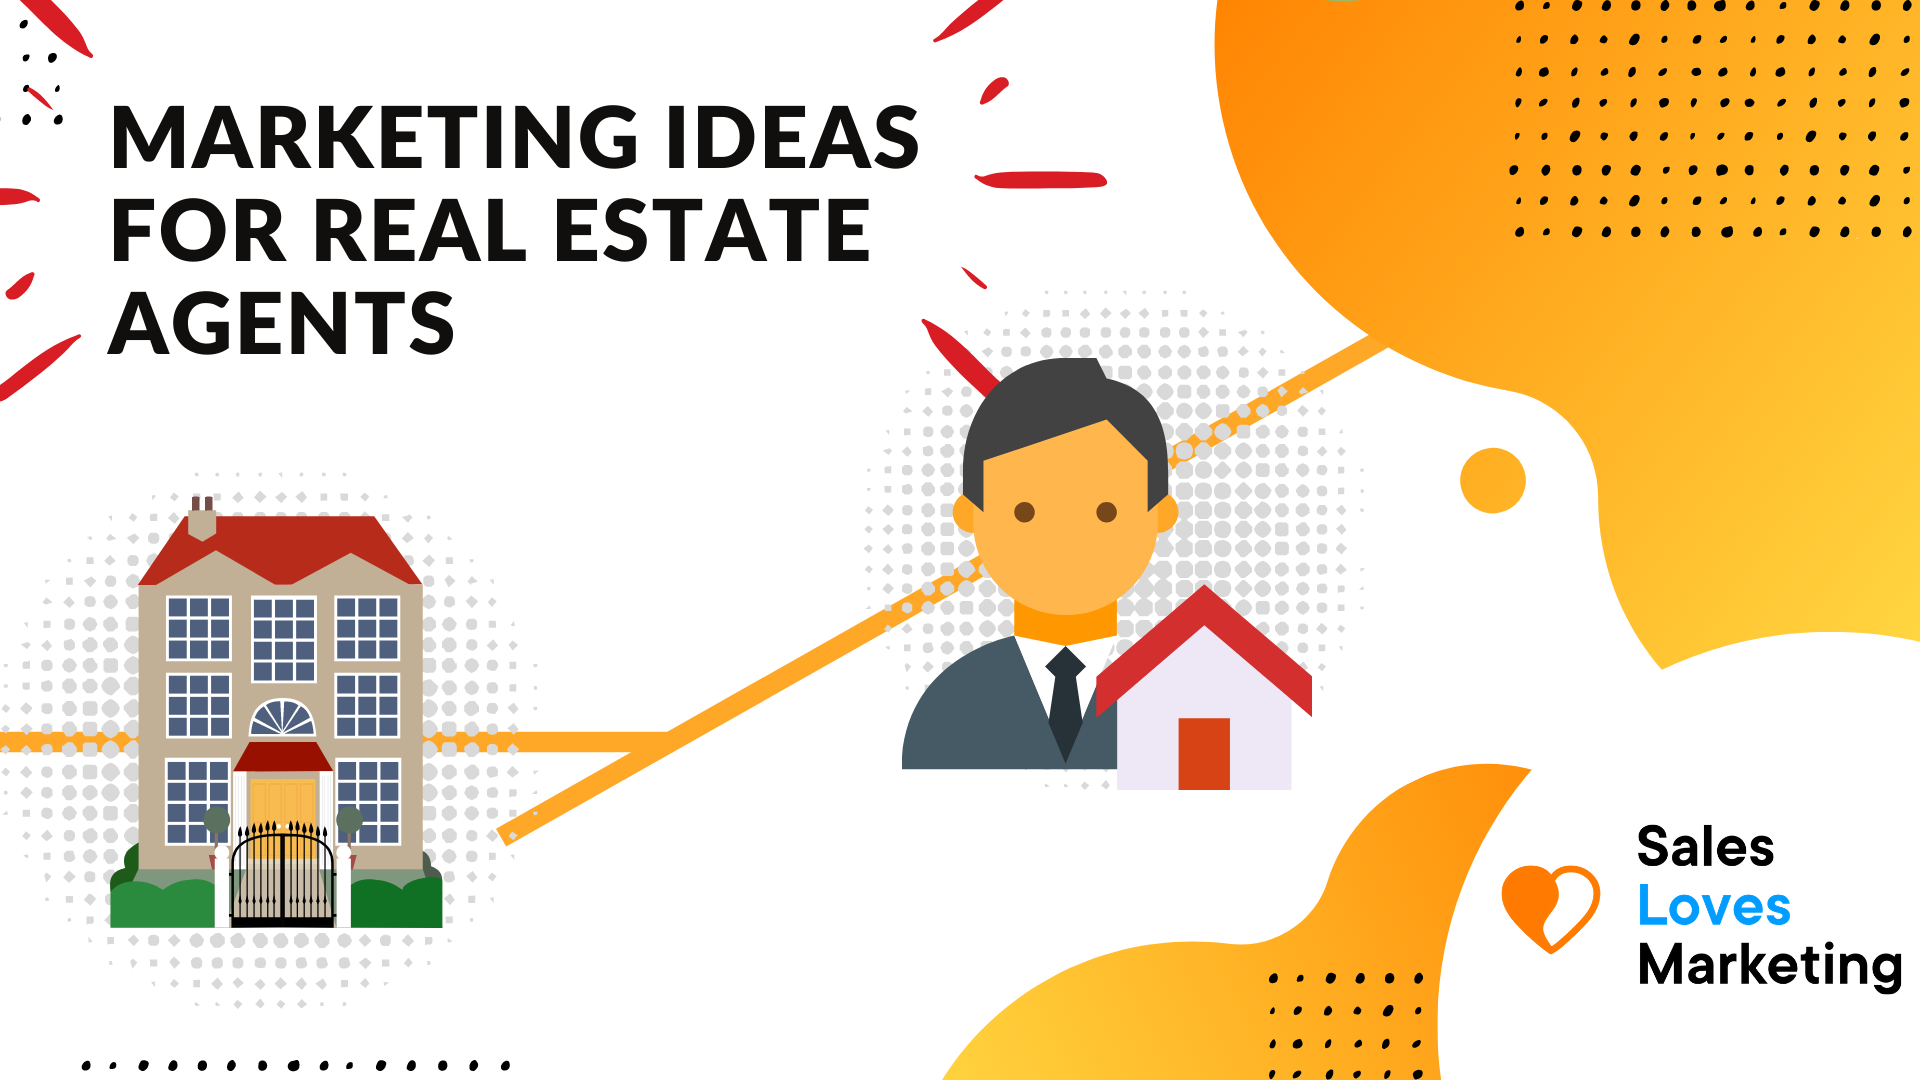 Great marketing ideas for real estate agents to generate more leads and sales for your business